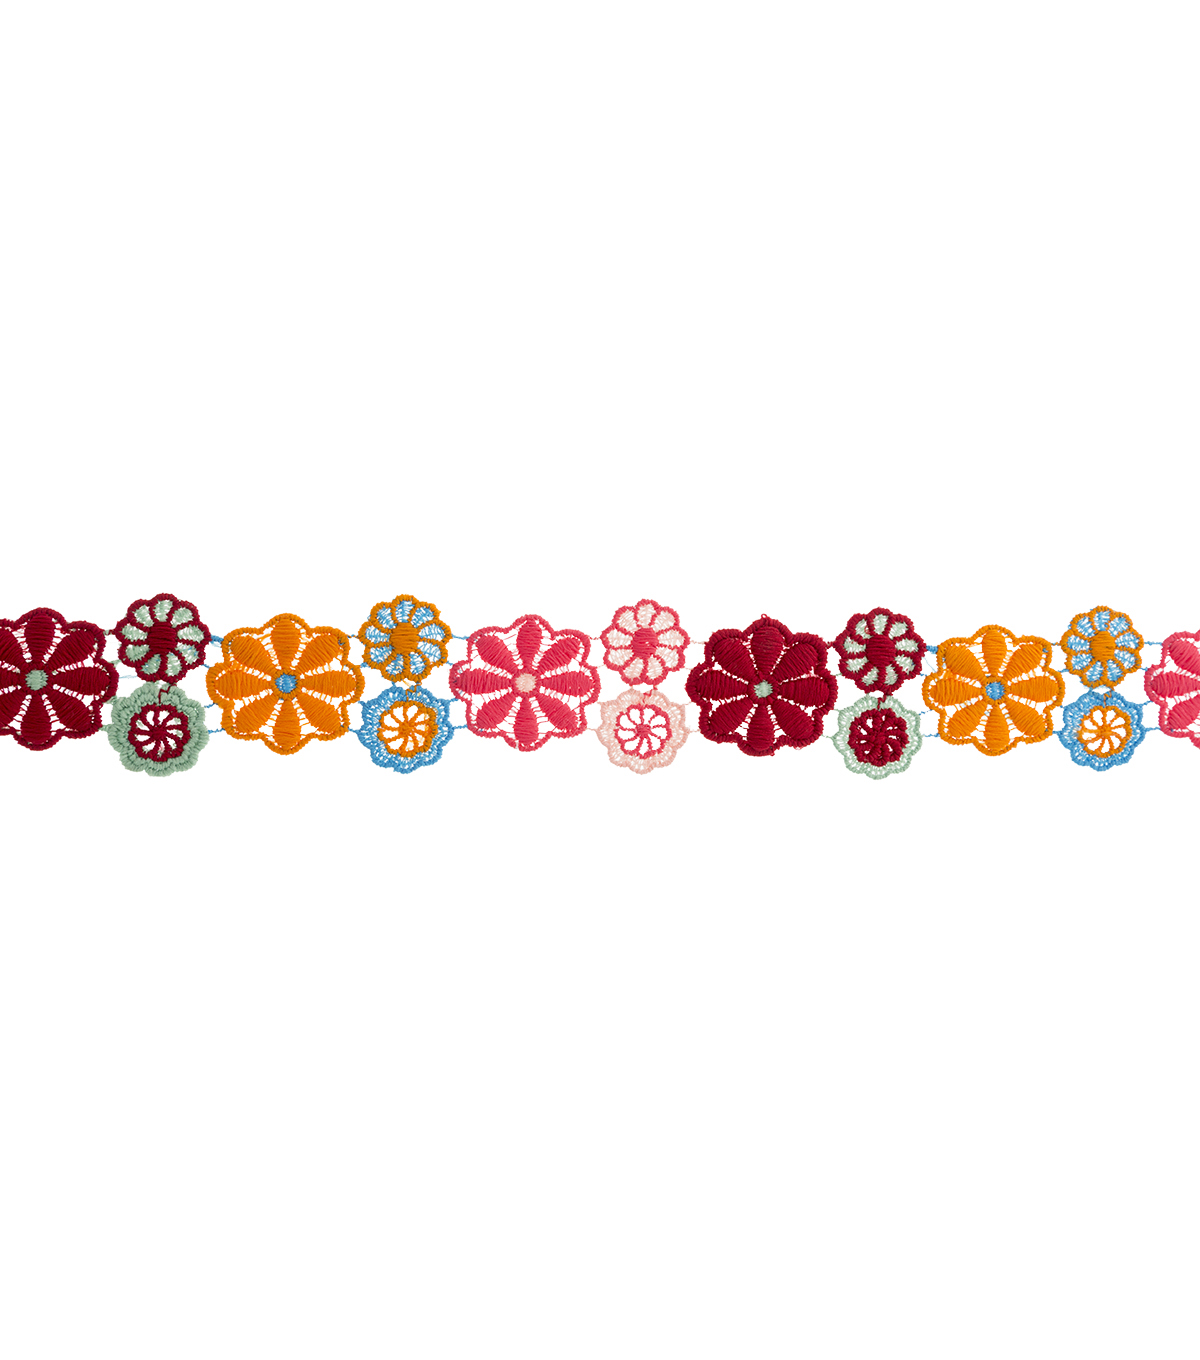 Simplicity Embroidered Floral Mesh Trim-Multi